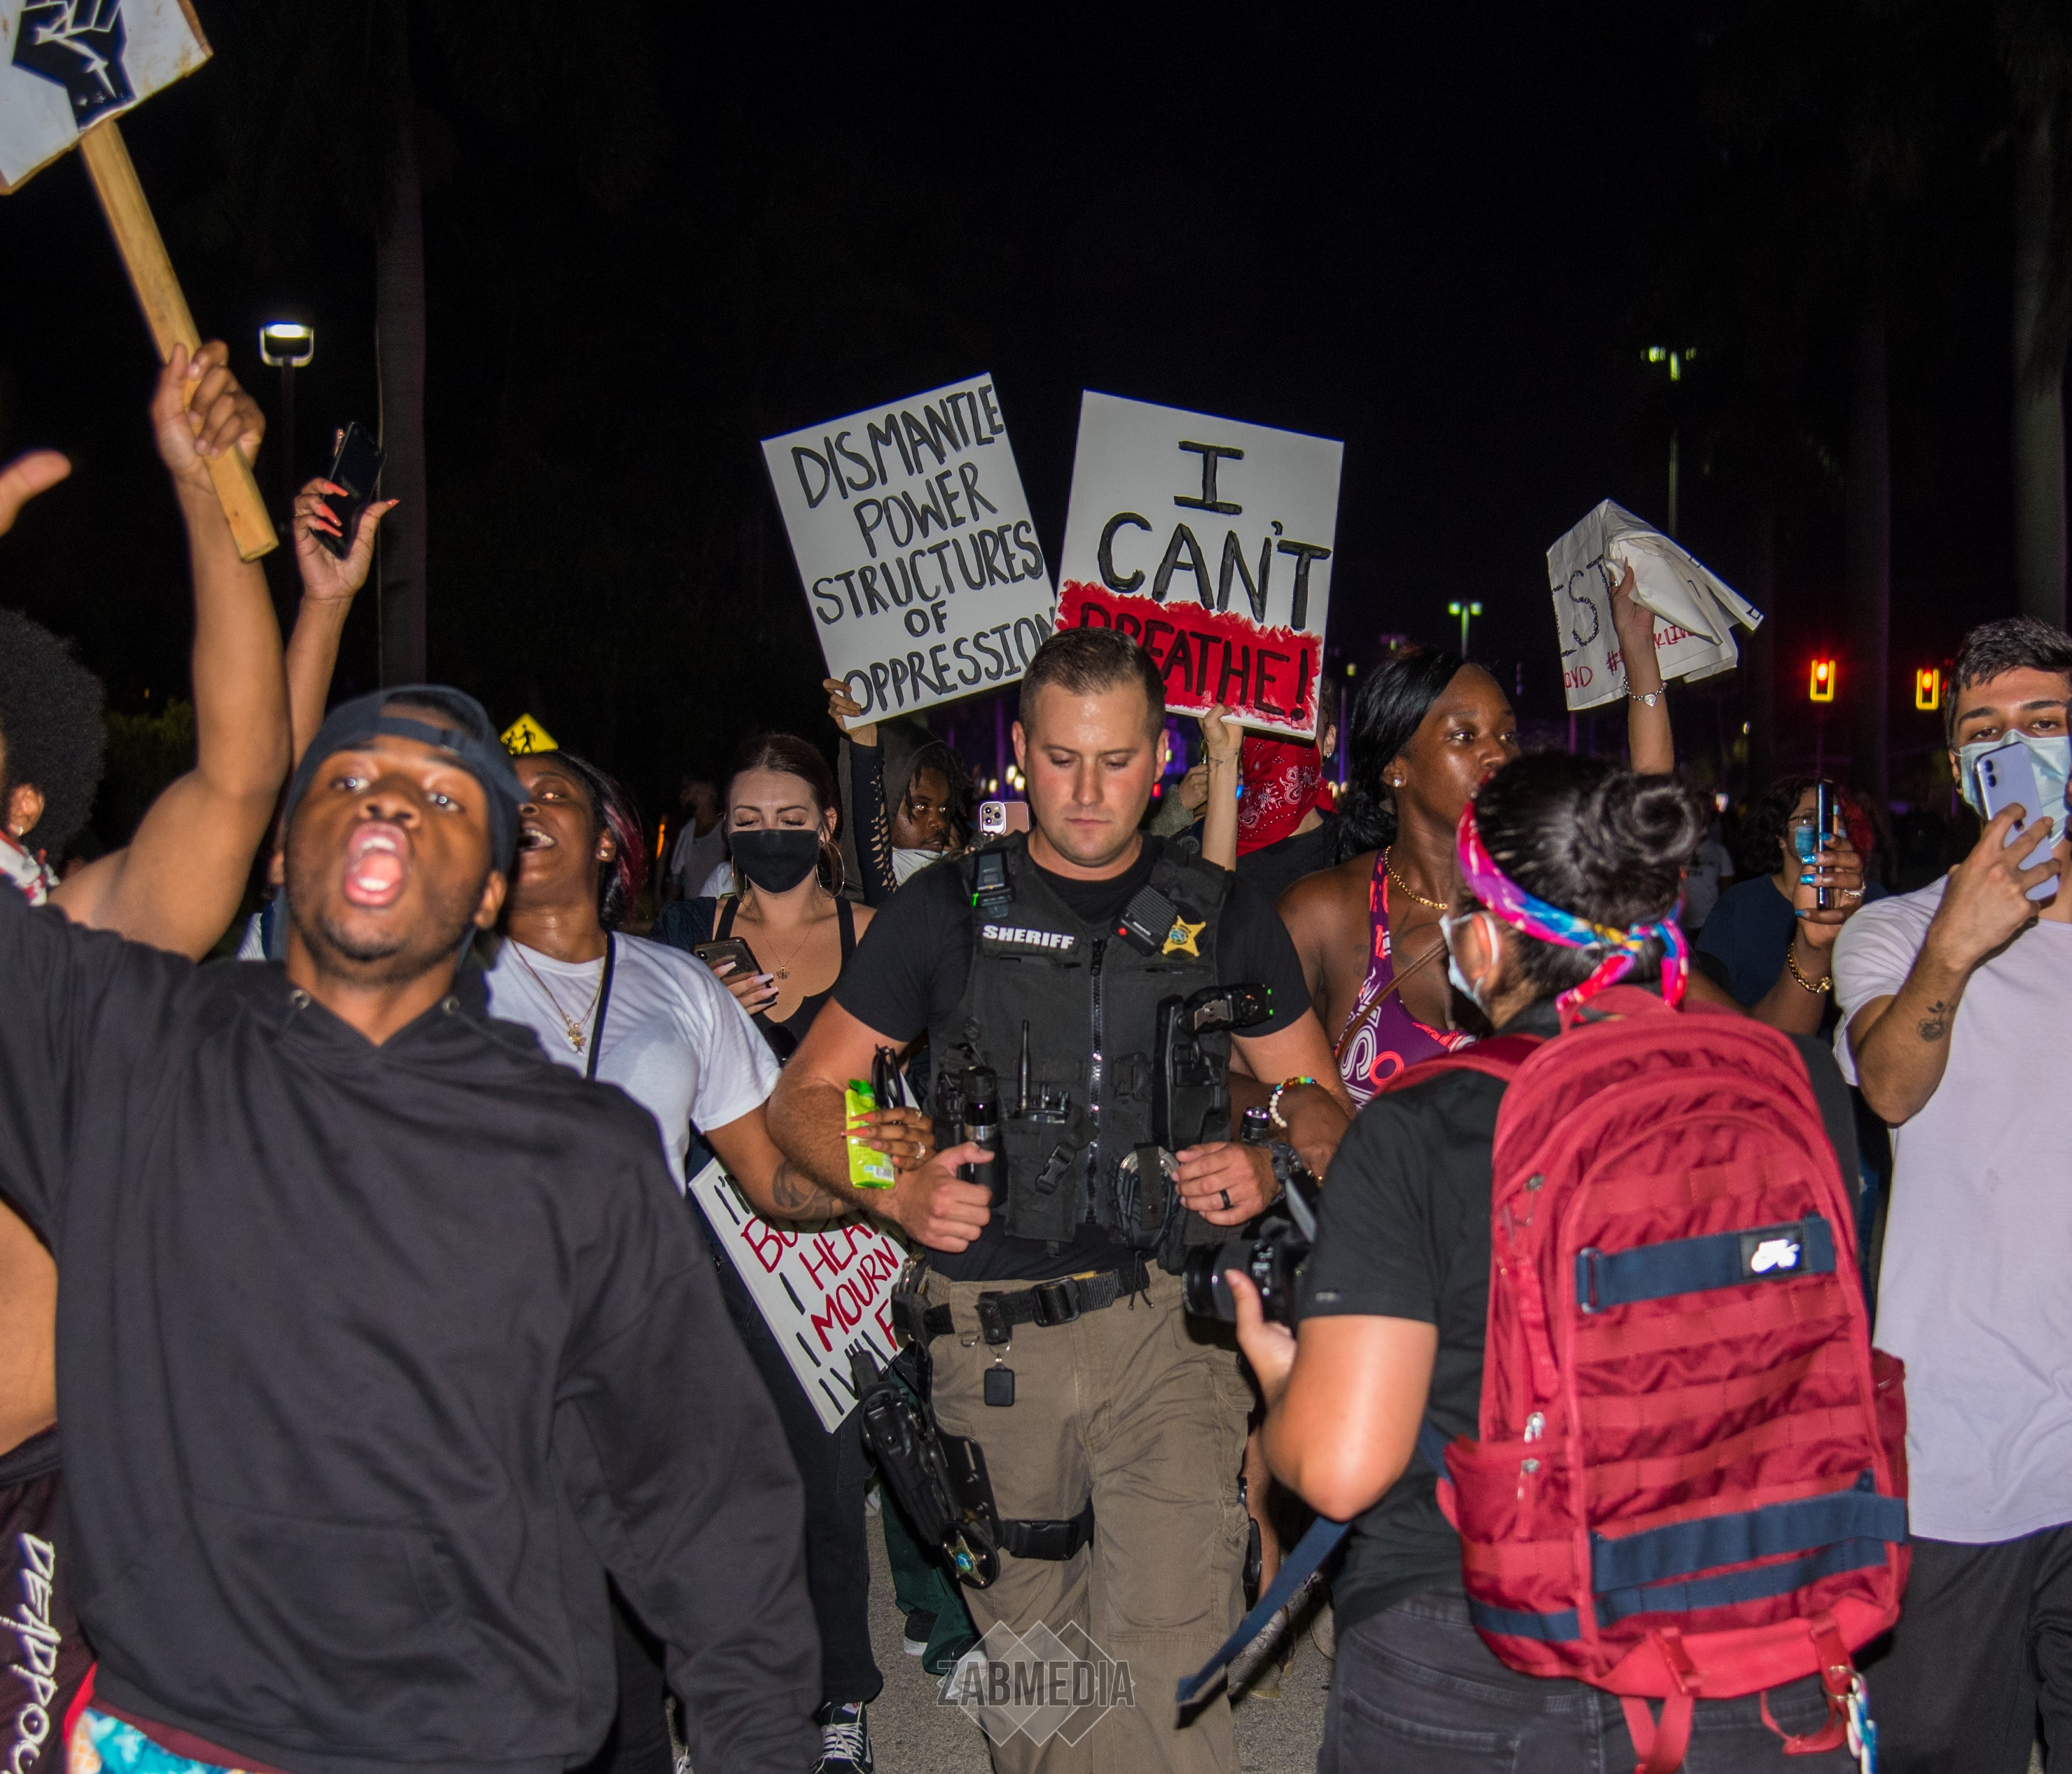 Lisa Martinez and Cherry Estelomme stepped forward to escort Collier County sheriff's corporal Dan McCoy when he expressed concern about walking amid a June 1 peaceful, but heated protest in Naples after the killing of George Floyd.